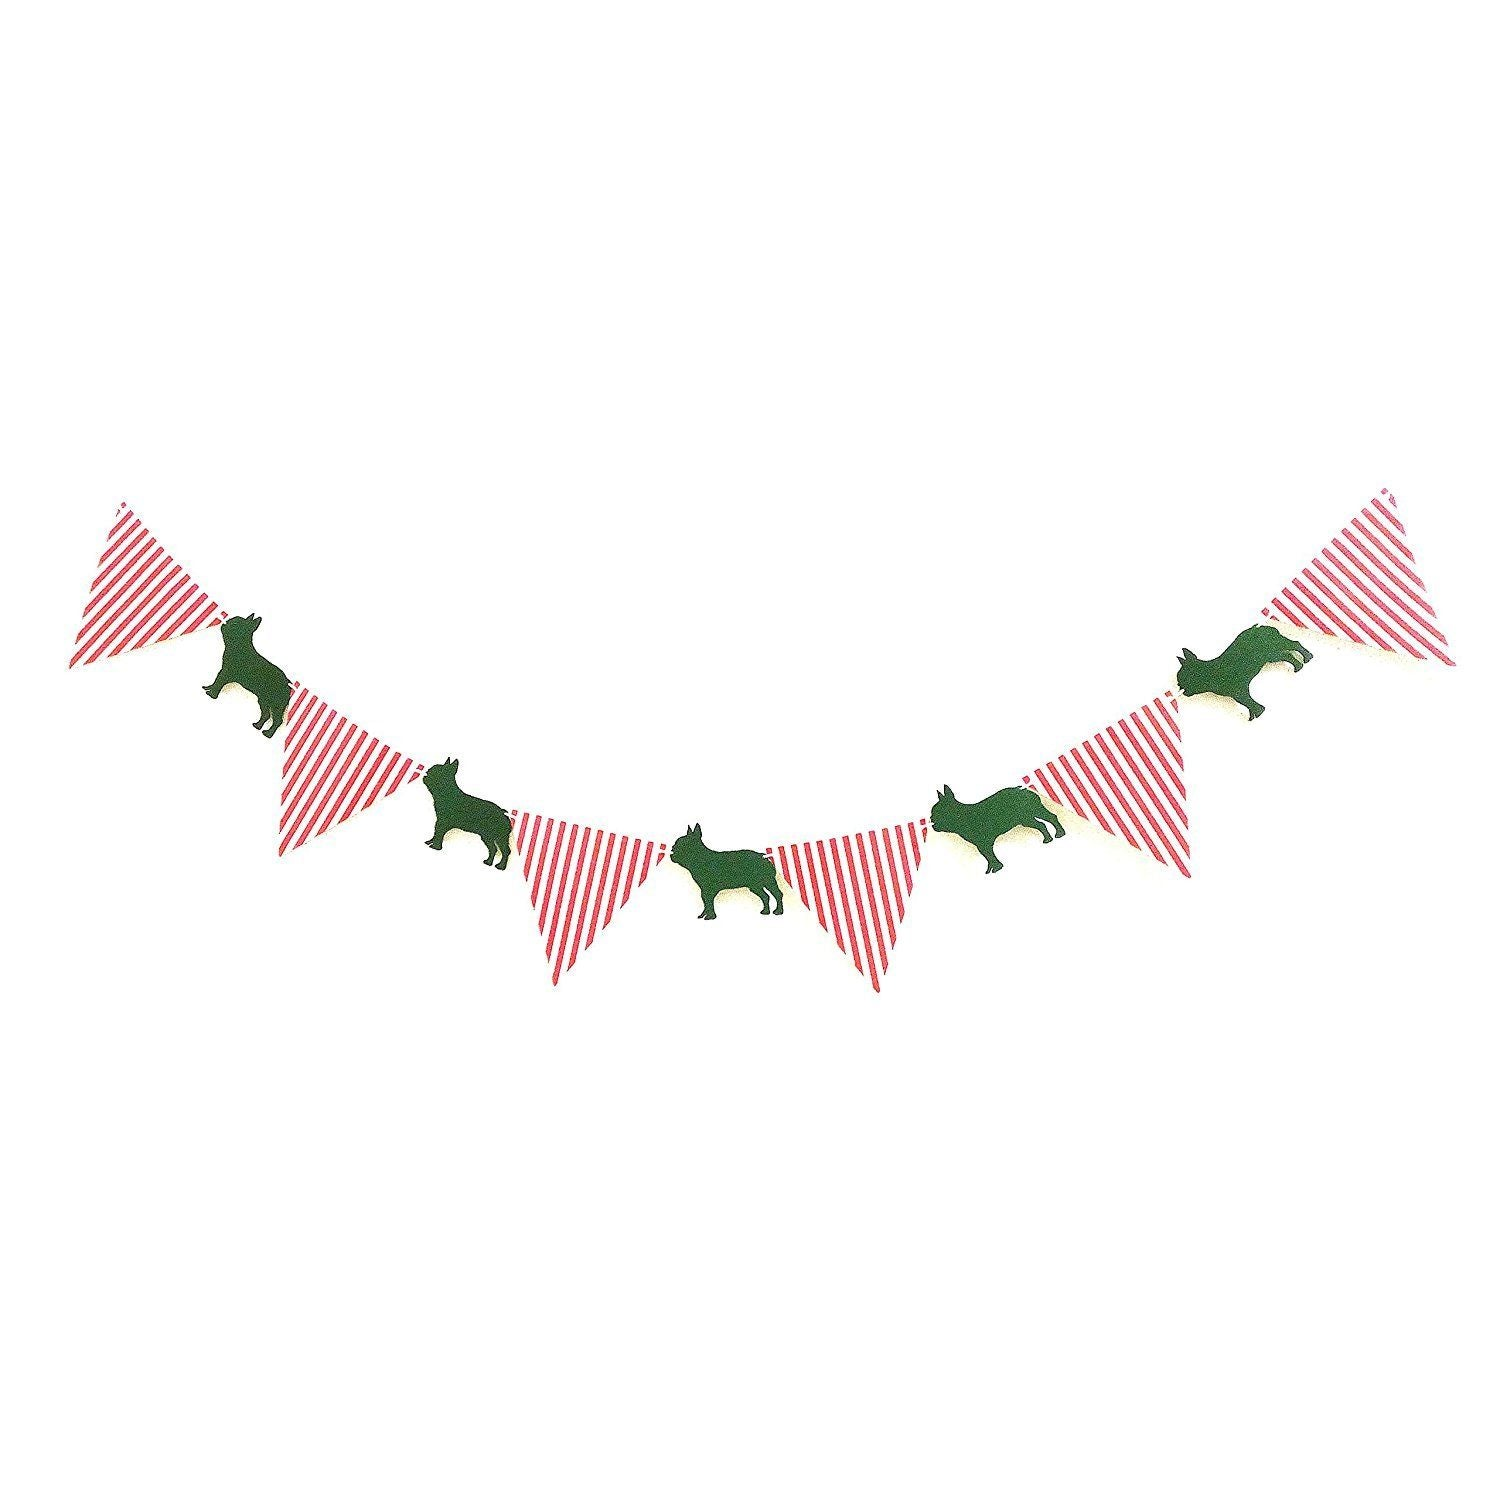 French bulldog Banners, Bunting & Garlands party flag Playroom Child's Room Decor on Wall For You Frenchic